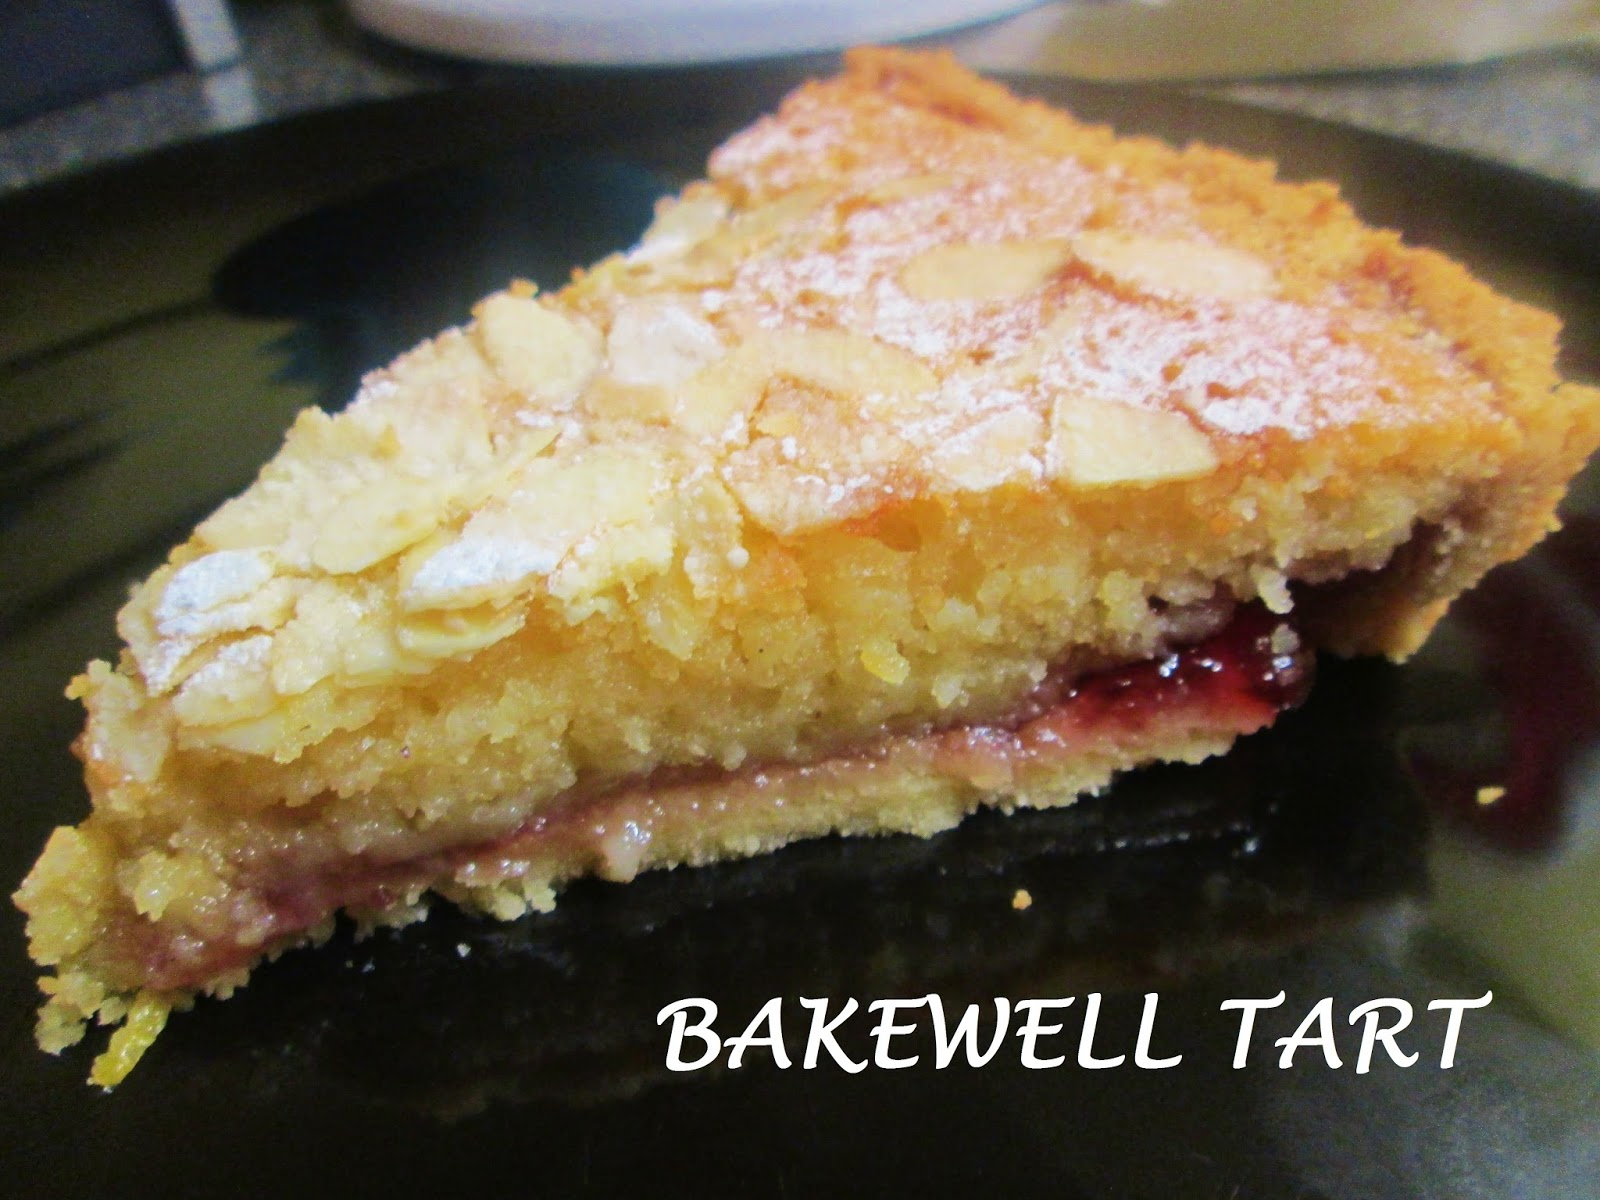 http://themessykitchenuk.blogspot.co.uk/2013/07/bakewell-tart.html